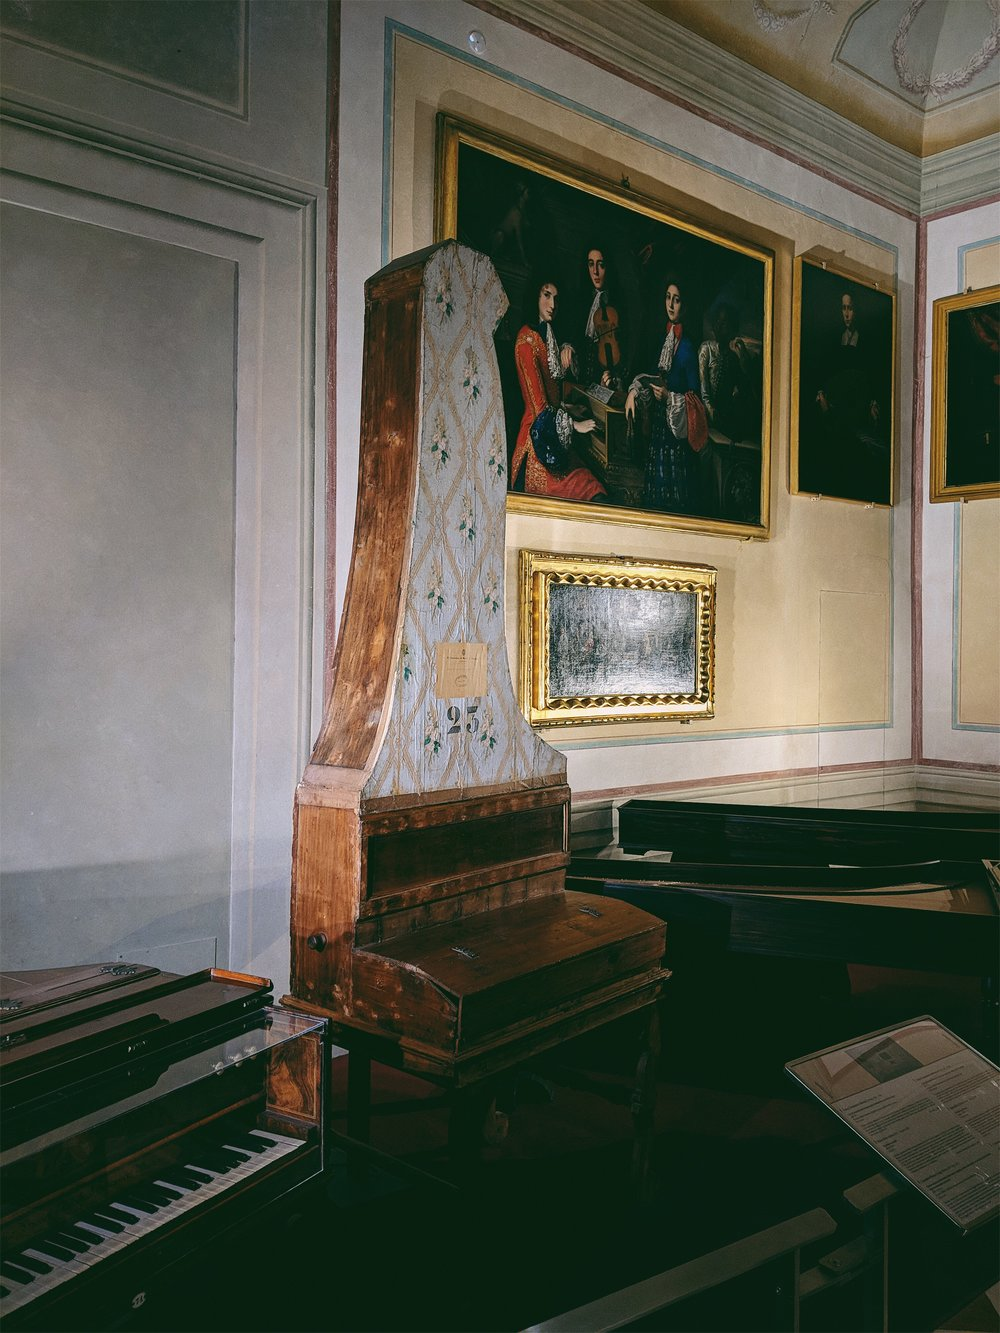 Music Gallery at the Accademia Gallery in Florence | Italy Travel Diary + Vlog Part 3